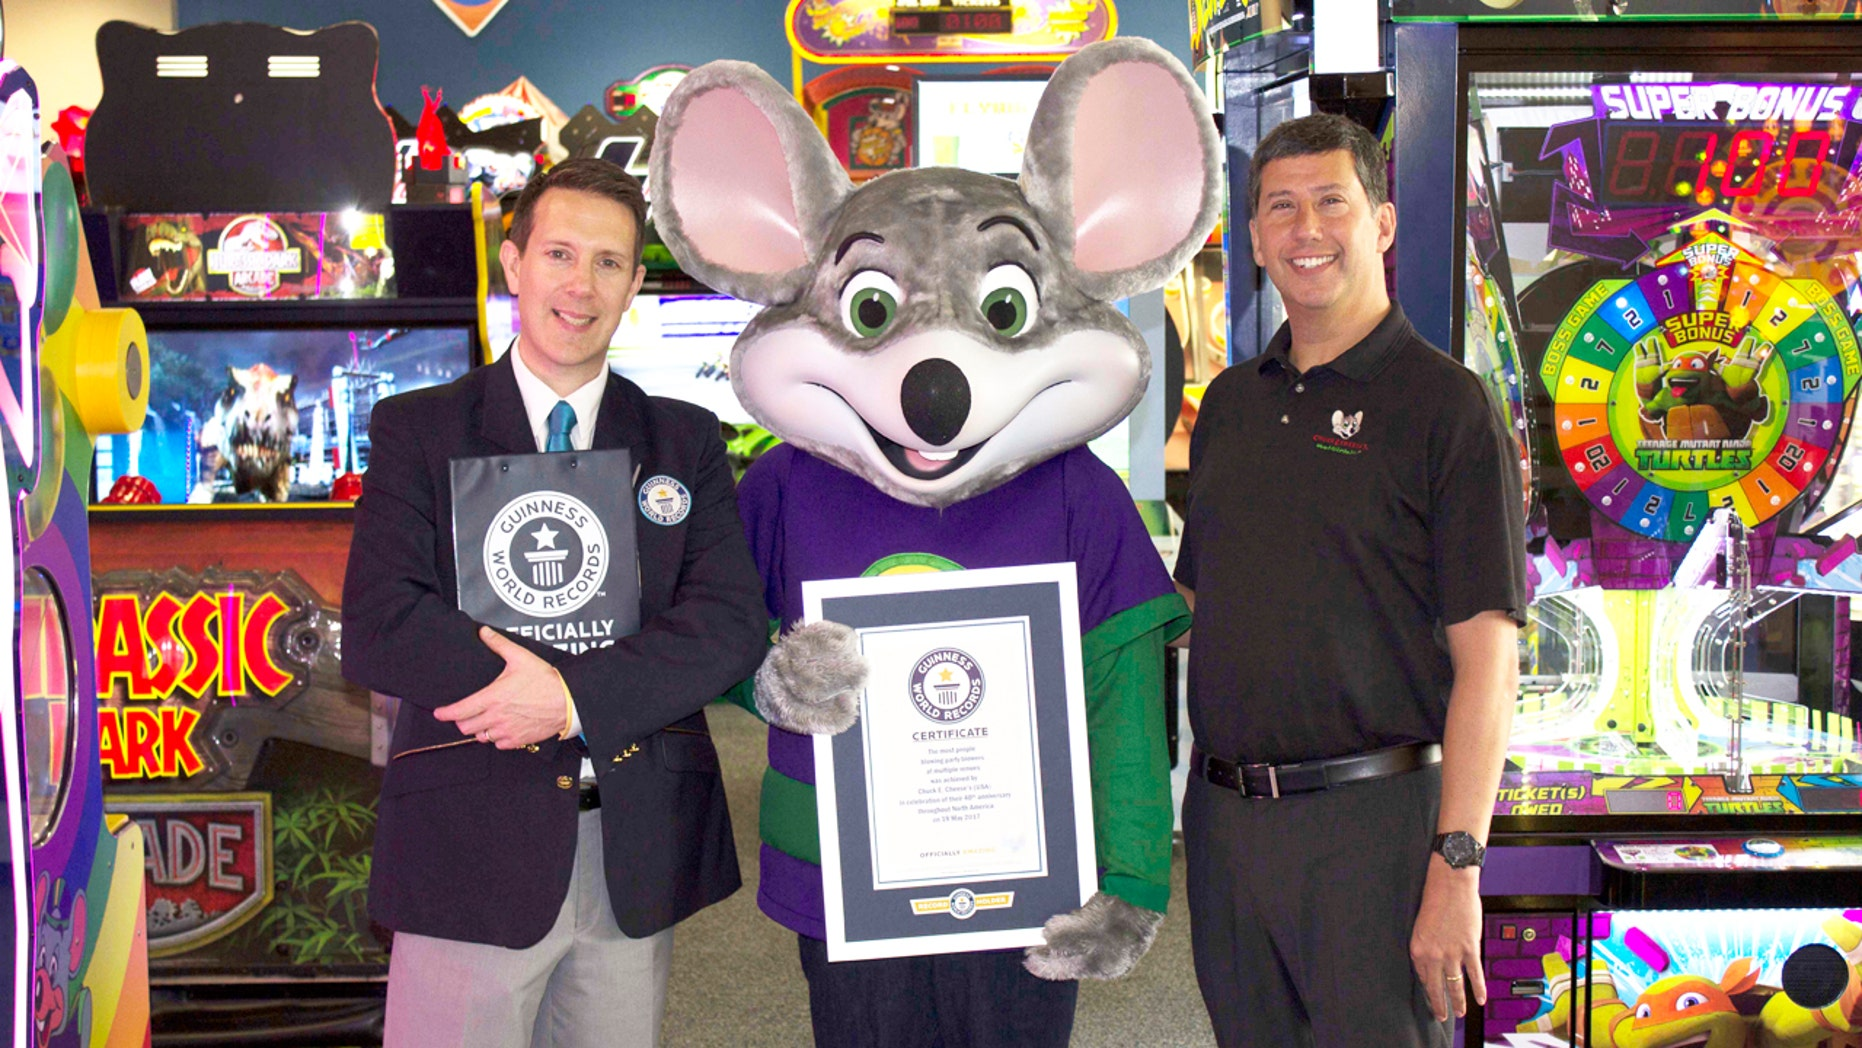 To celebrate its 40th anniversary, Chuck E. Cheese guests broke a Guinness Book of World Records on May 19, 2017 for the most people blowing party blowers simultaneously for 10 seconds.